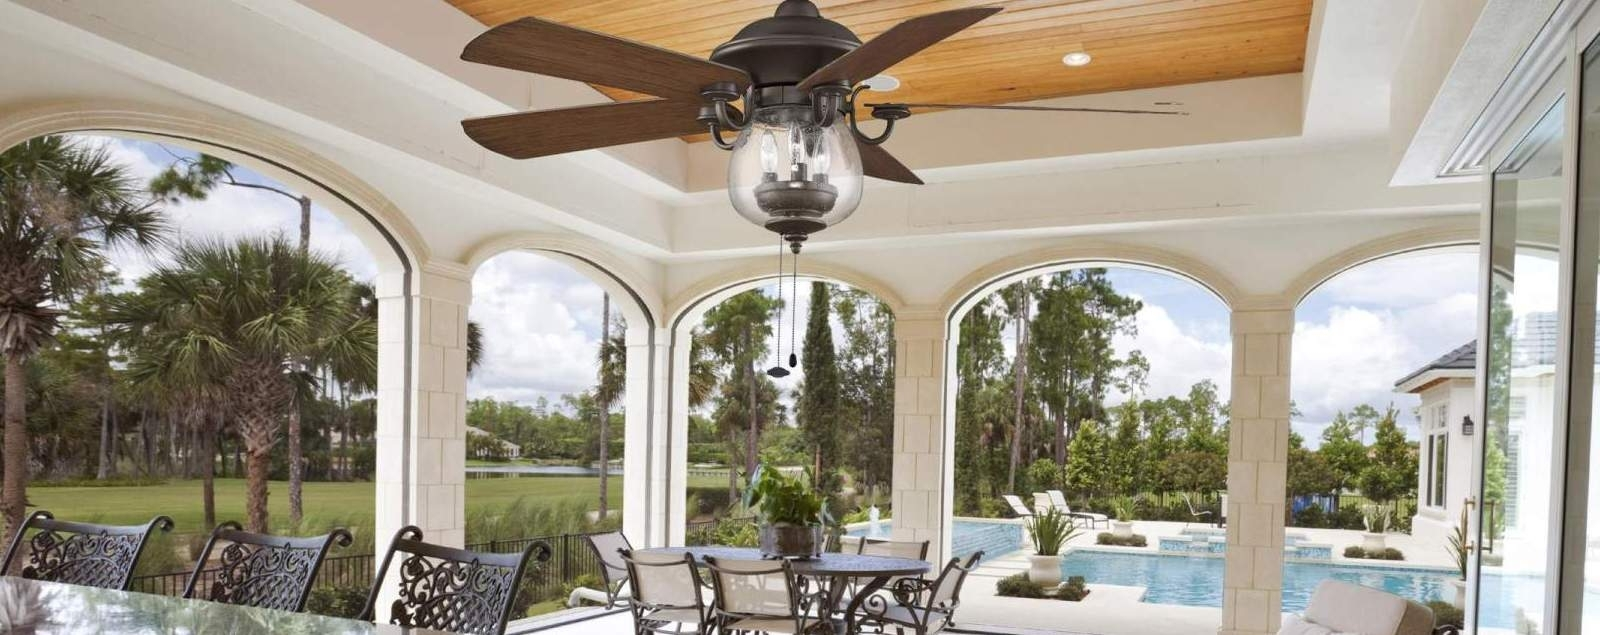 Outdoor Ceiling Fans – Shop Wet, Dry, And Damp Rated Outdoor Fans In Well Liked Outdoor Ceiling Fans (View 8 of 20)